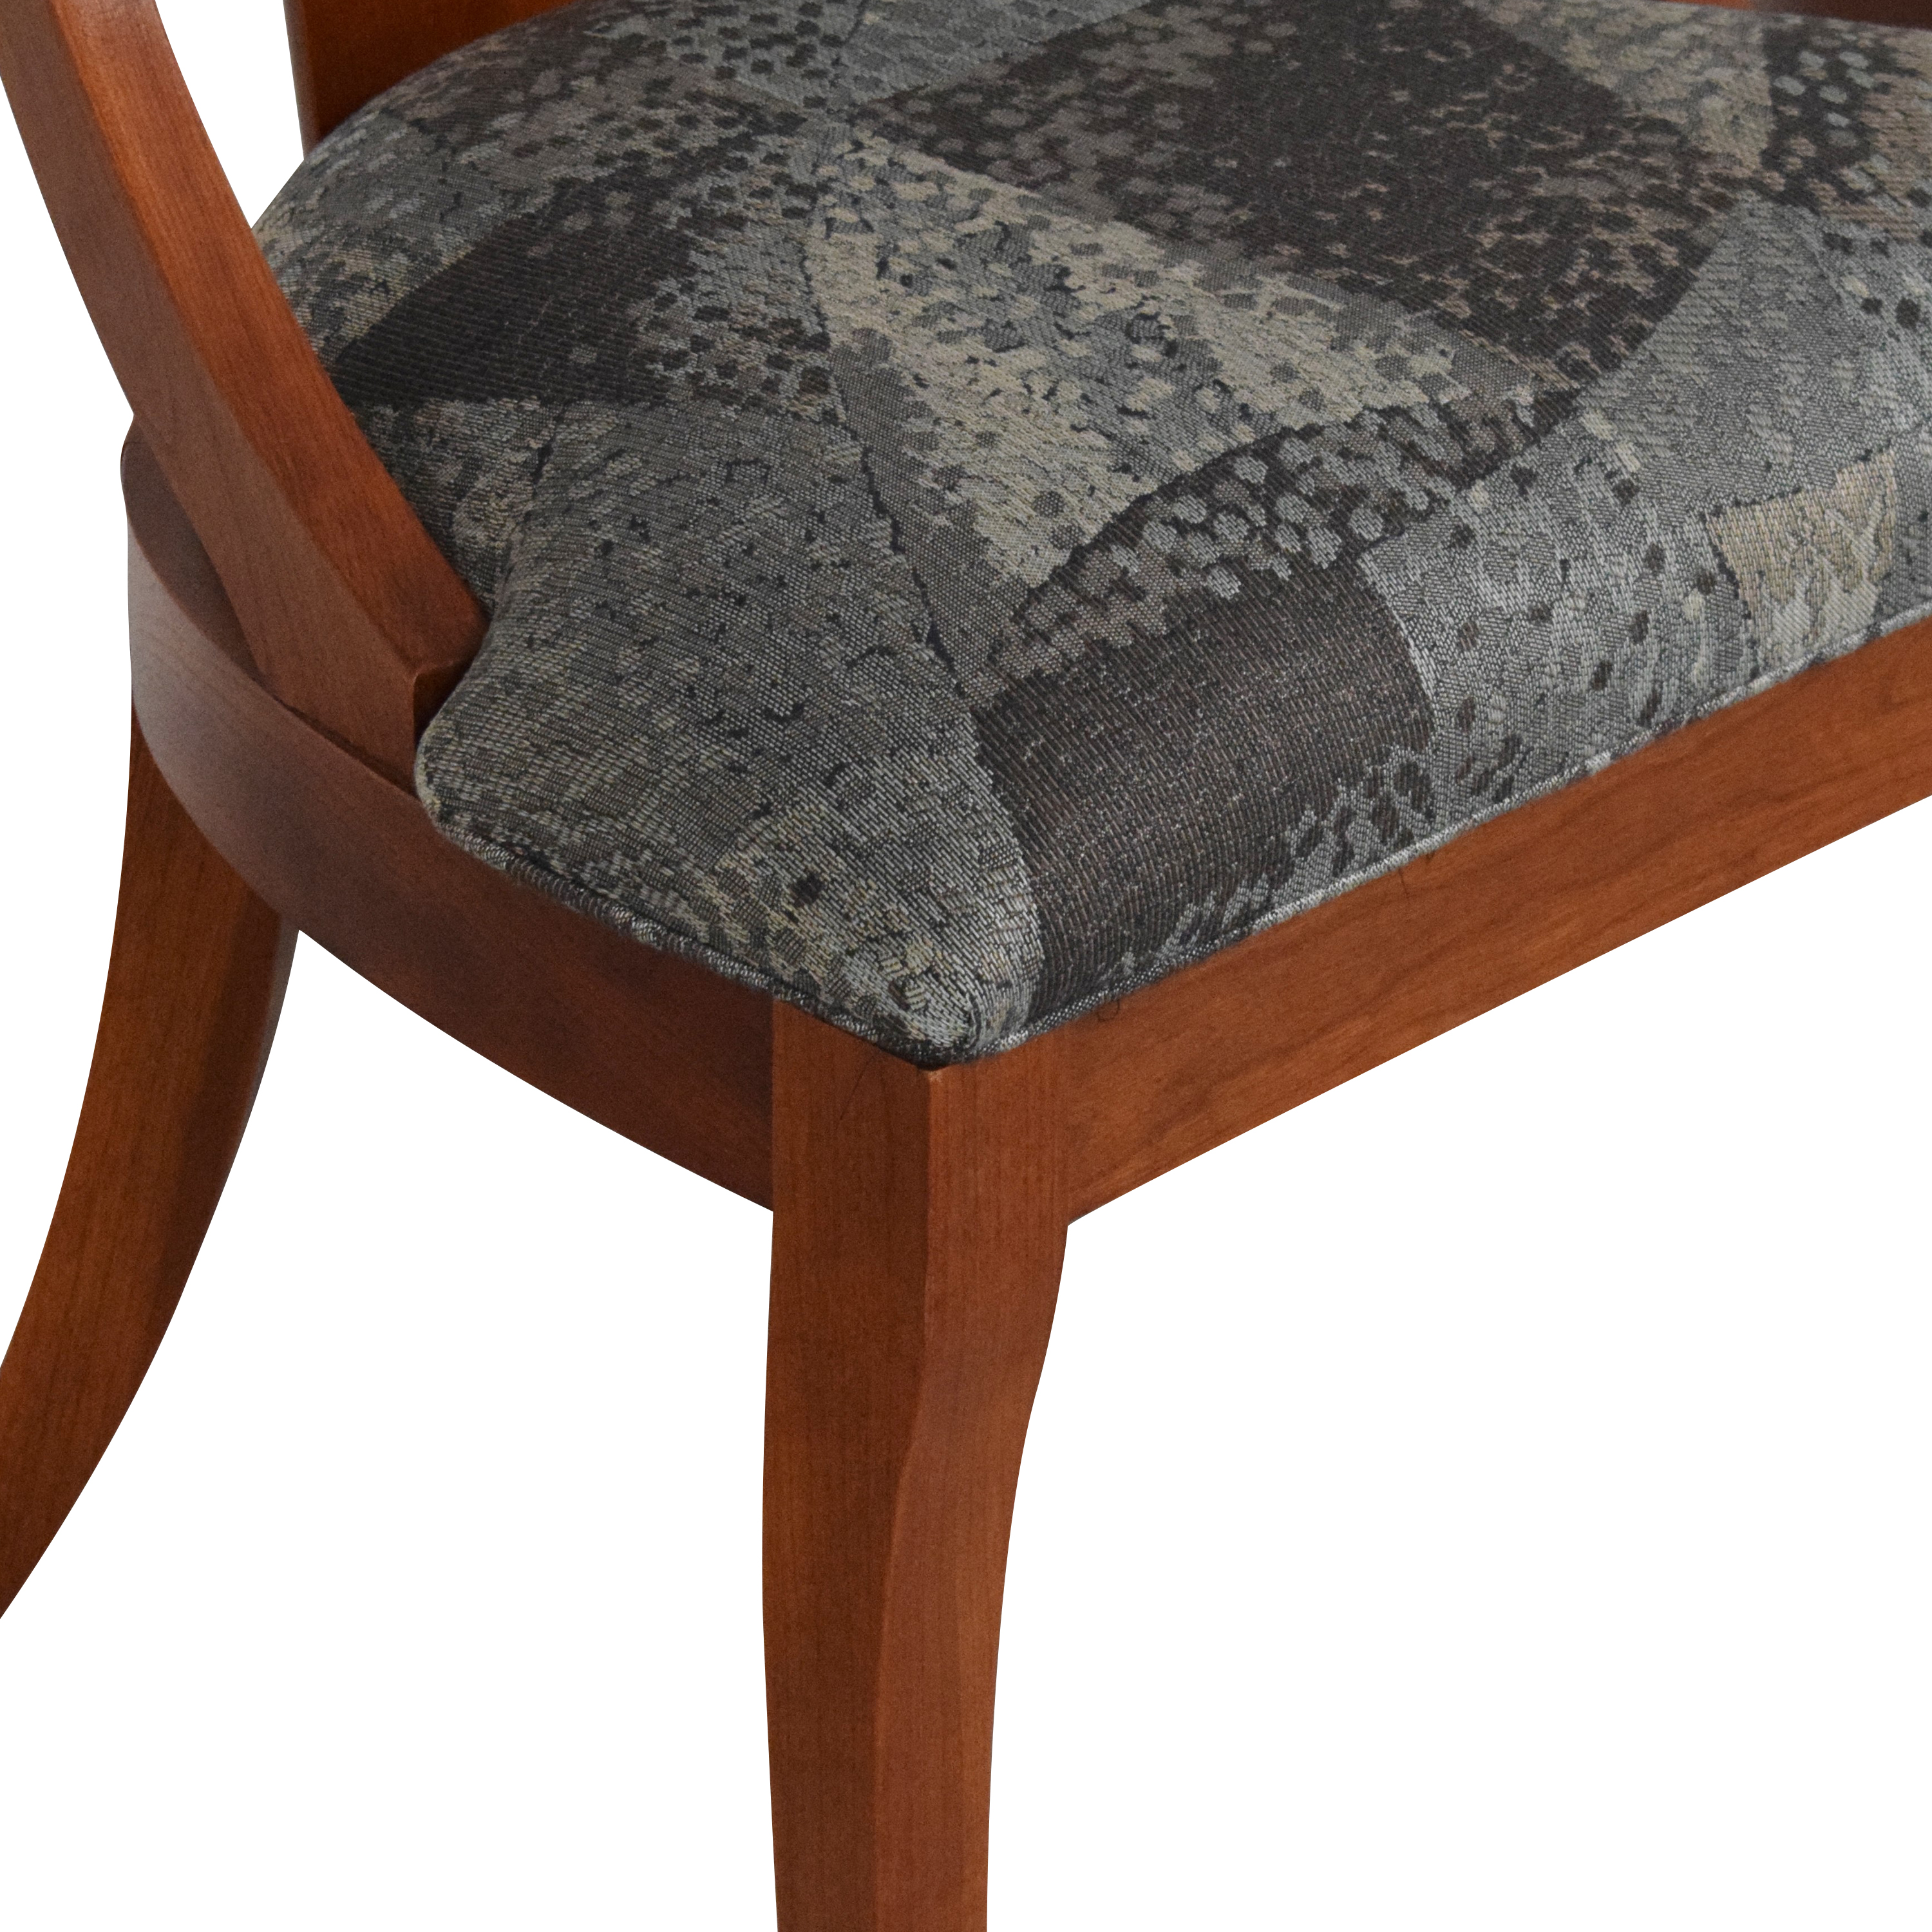 Ethan Allen Ethan Allen Medallion Dining Chairs on sale